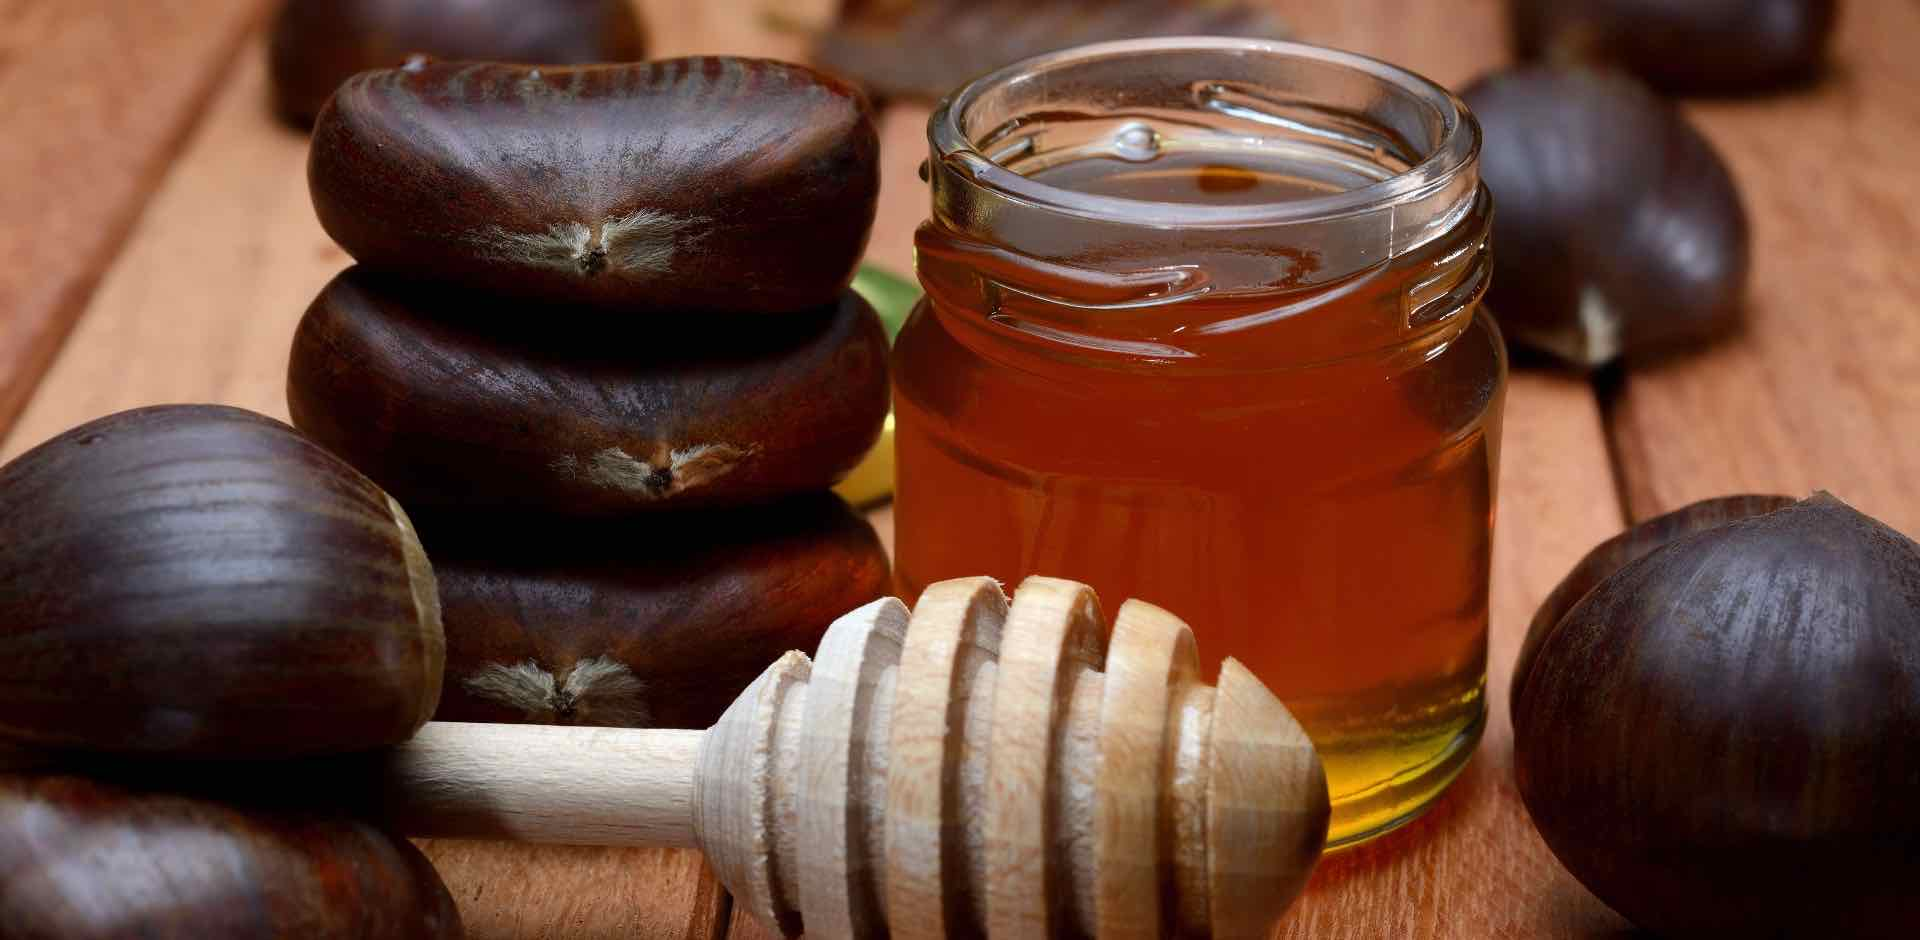 Miele castagno - chestnut honey - acquista online - Italian online food shop - Gustorotondo - Italian online food boutique